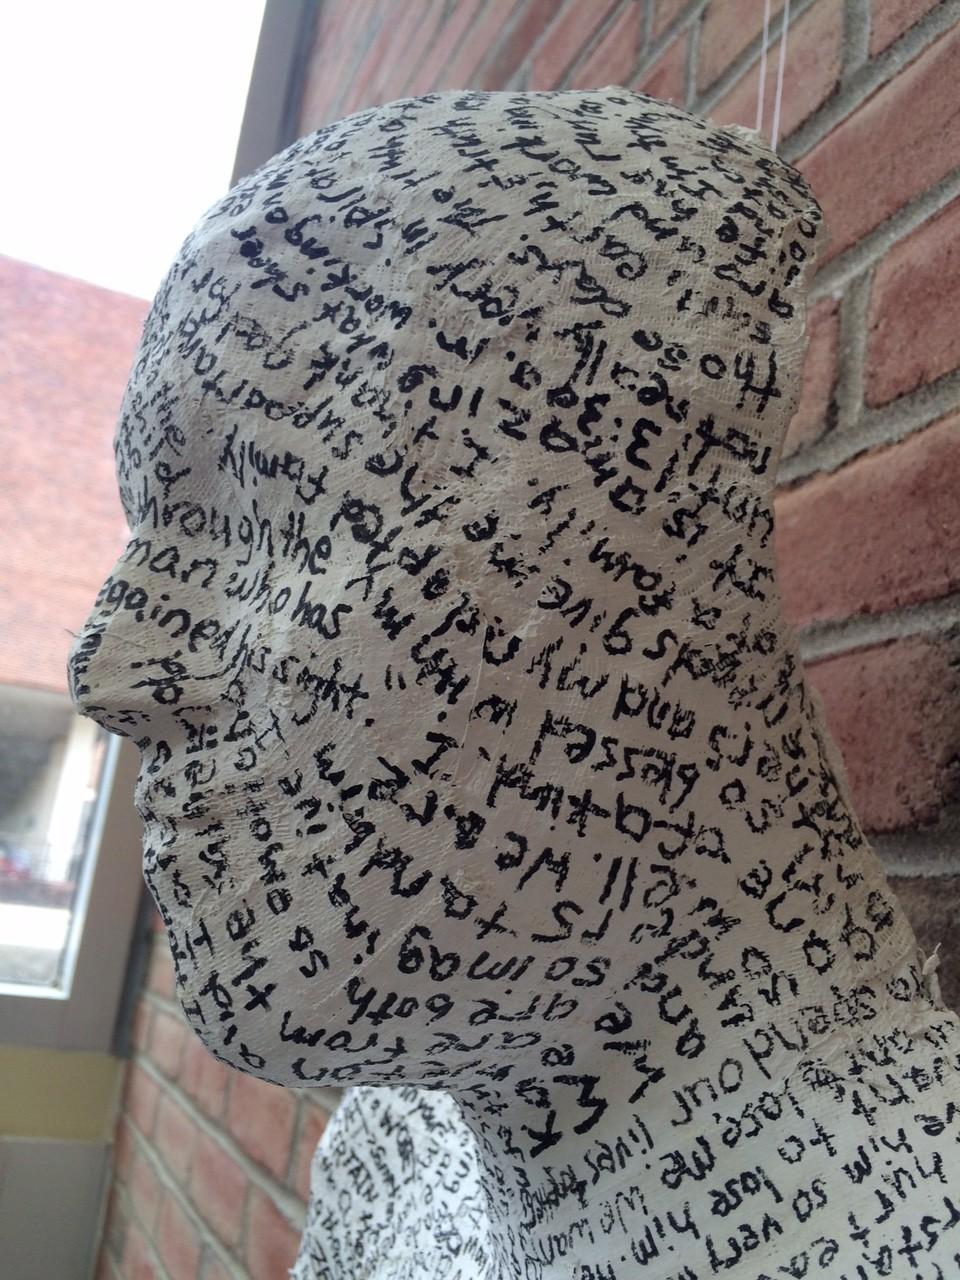 Abby Schlachter's cast covered in writing on display at the festival.